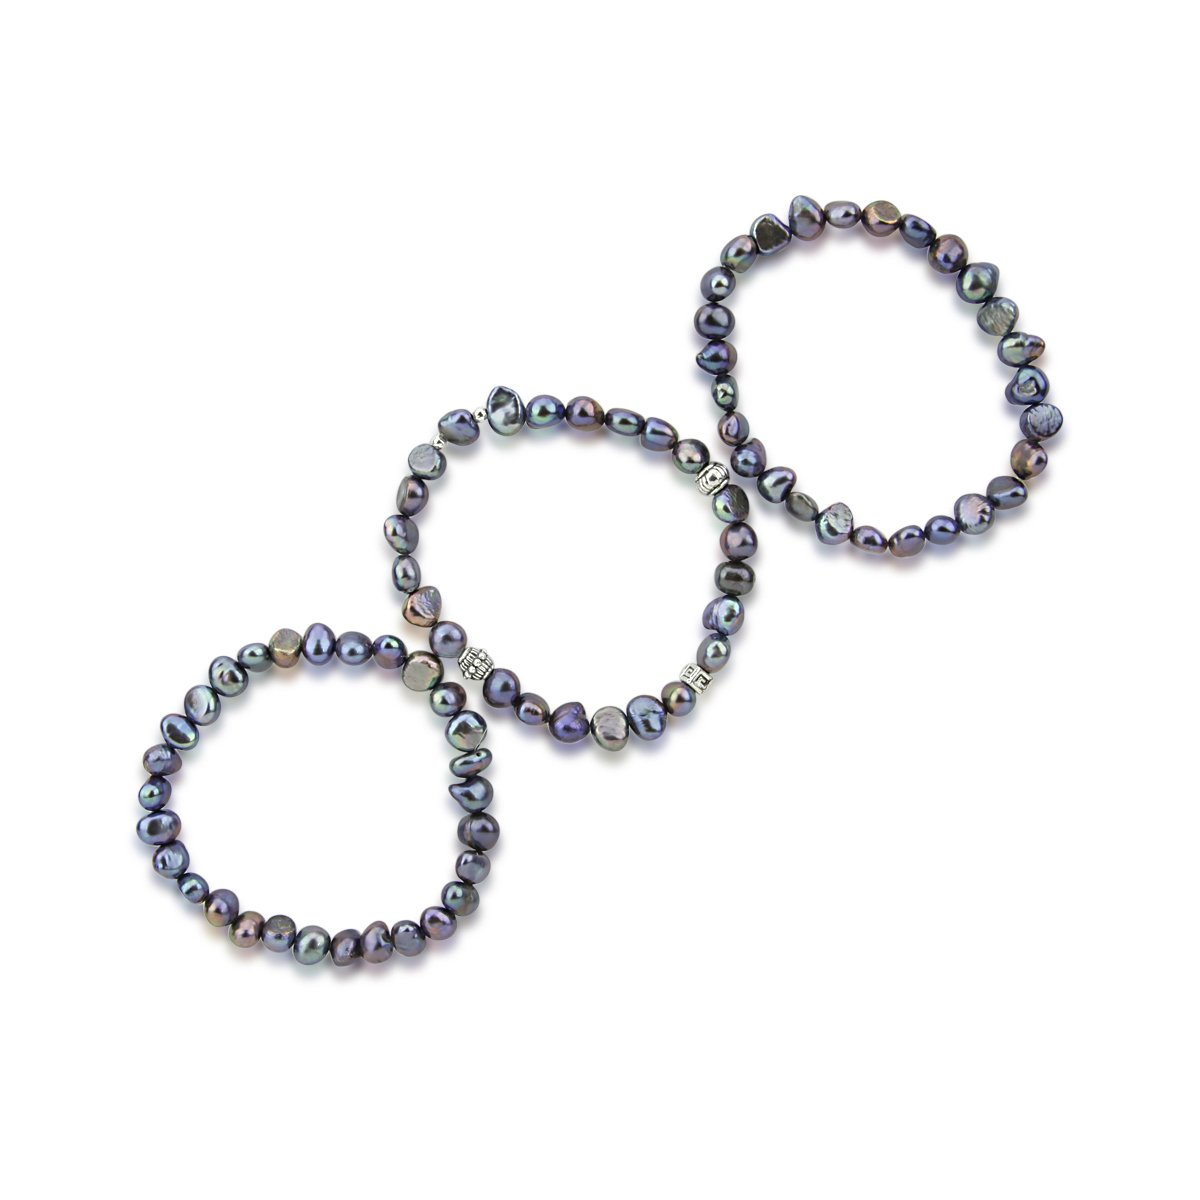 Genuine Freshwater Cultured Pearl 7-8mm Stretch Bracelets with Base-Metal-Beads Set of 3 7.5